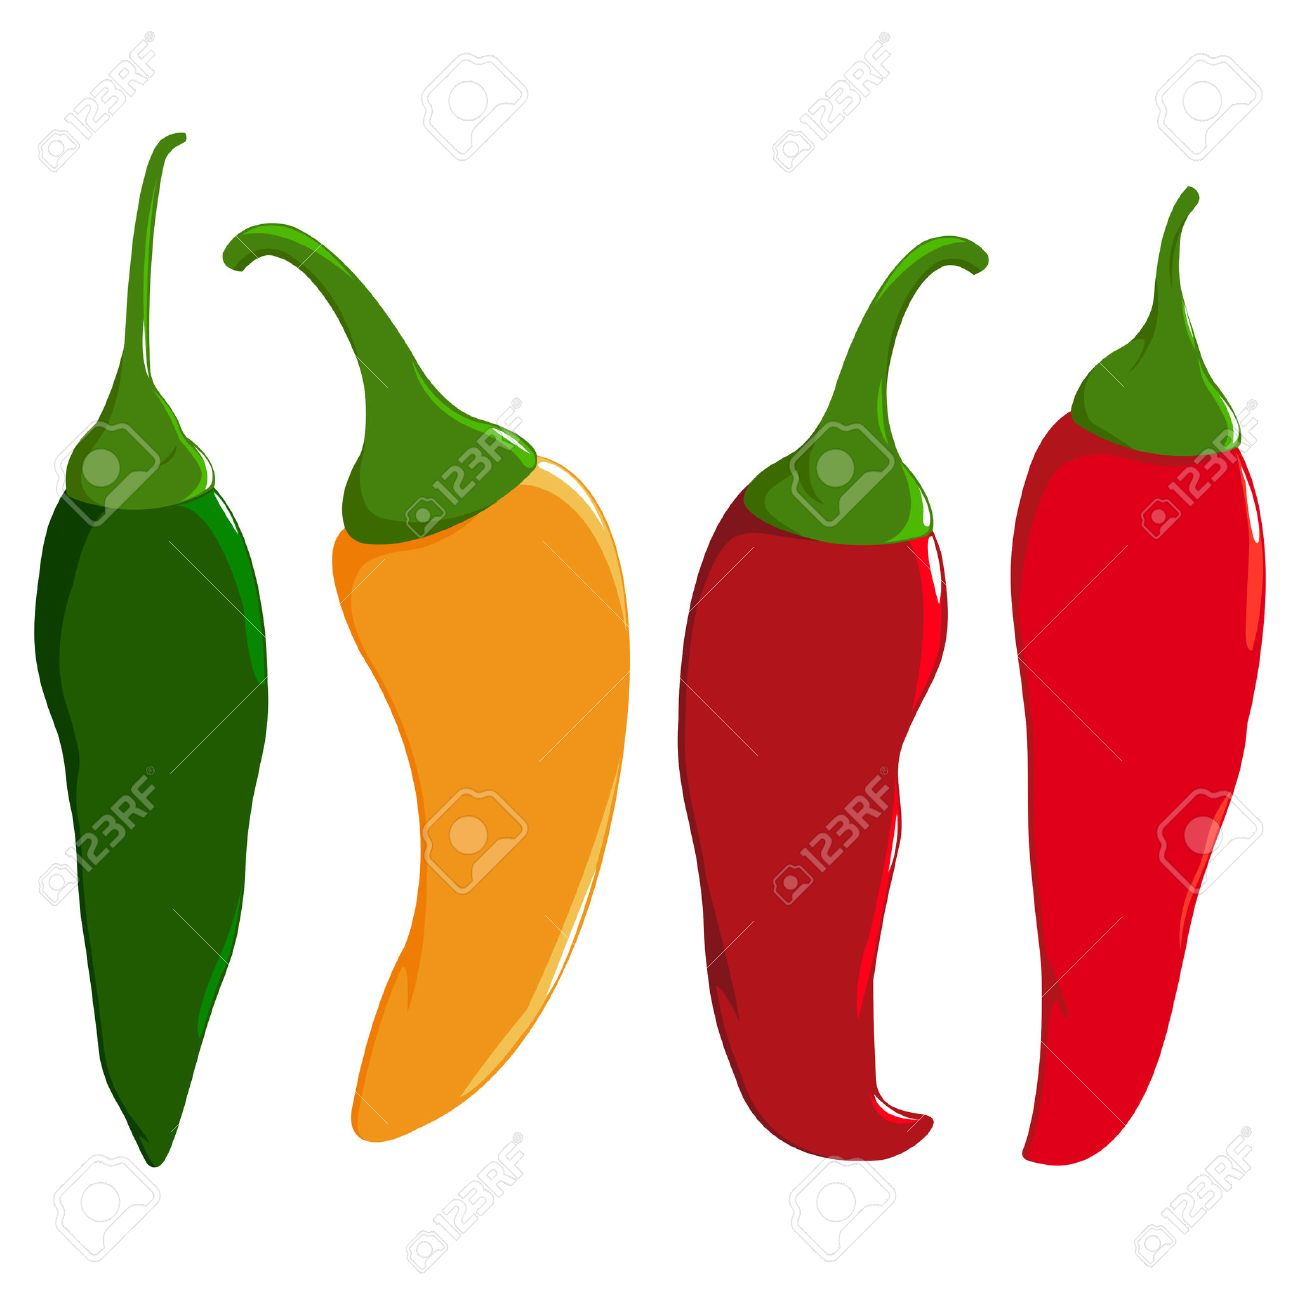 Hot peppers clipart clip black and white Hot peppers clipart 4 » Clipart Station clip black and white